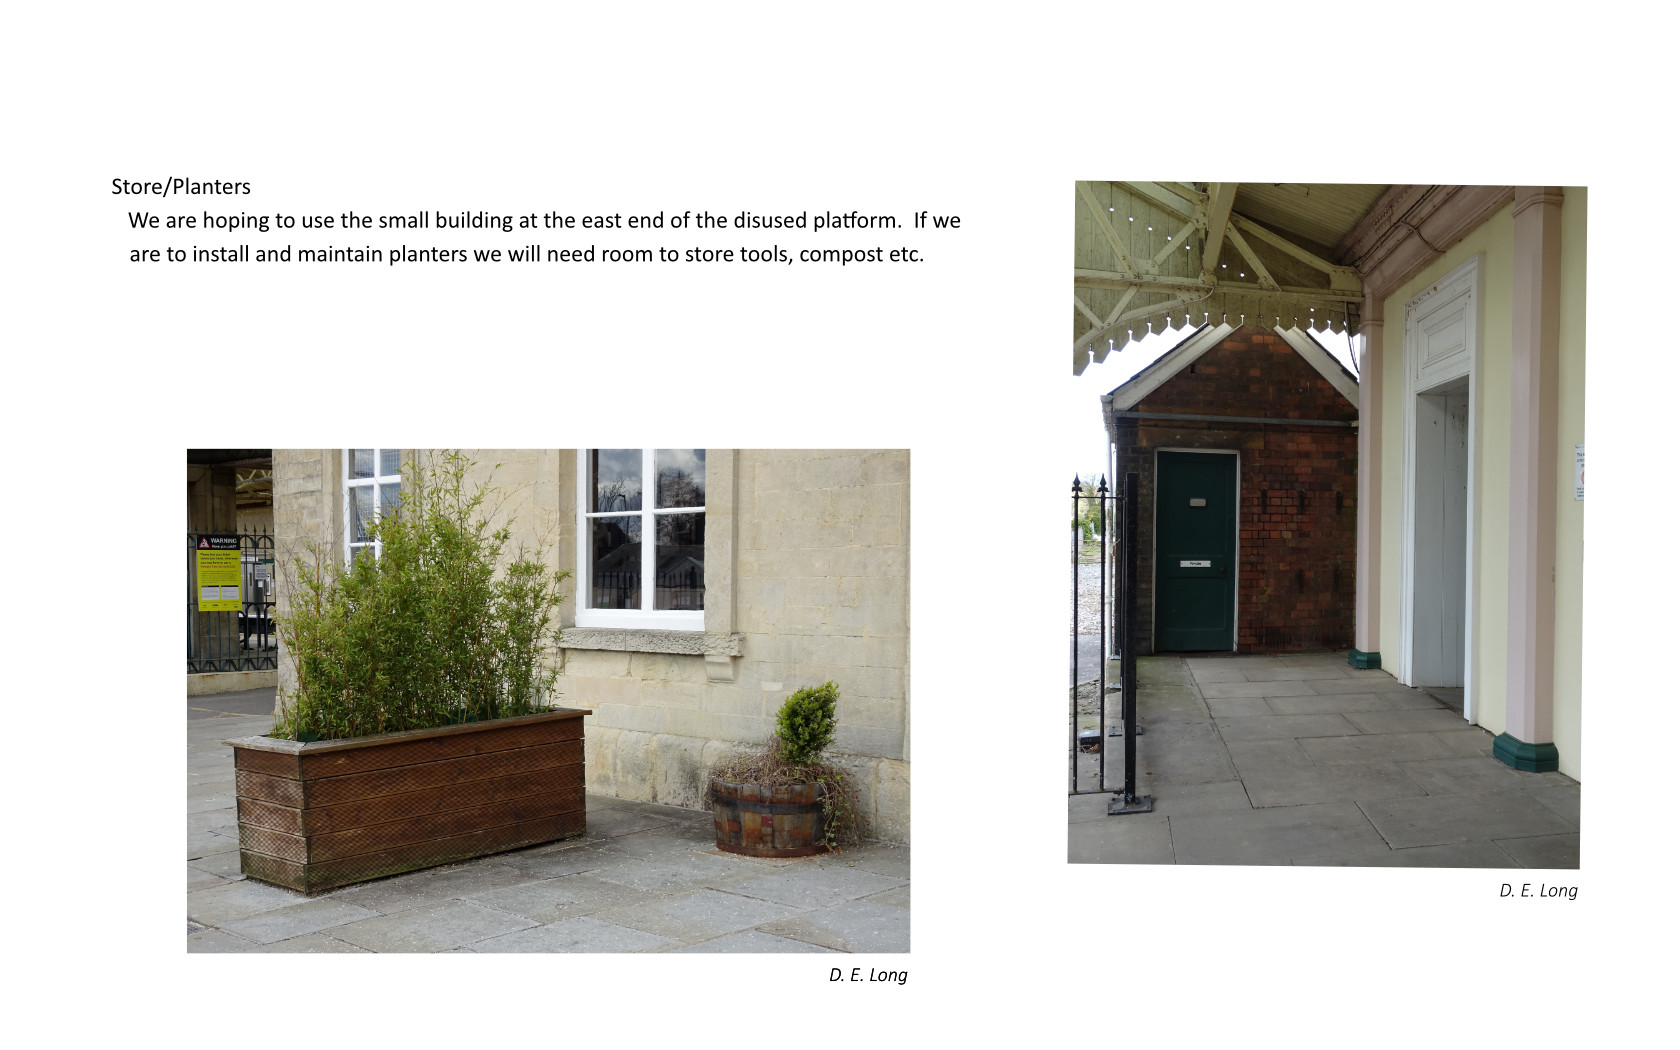 Current views of planters and a small building on the disused side of the platform which the group wish to use for storage